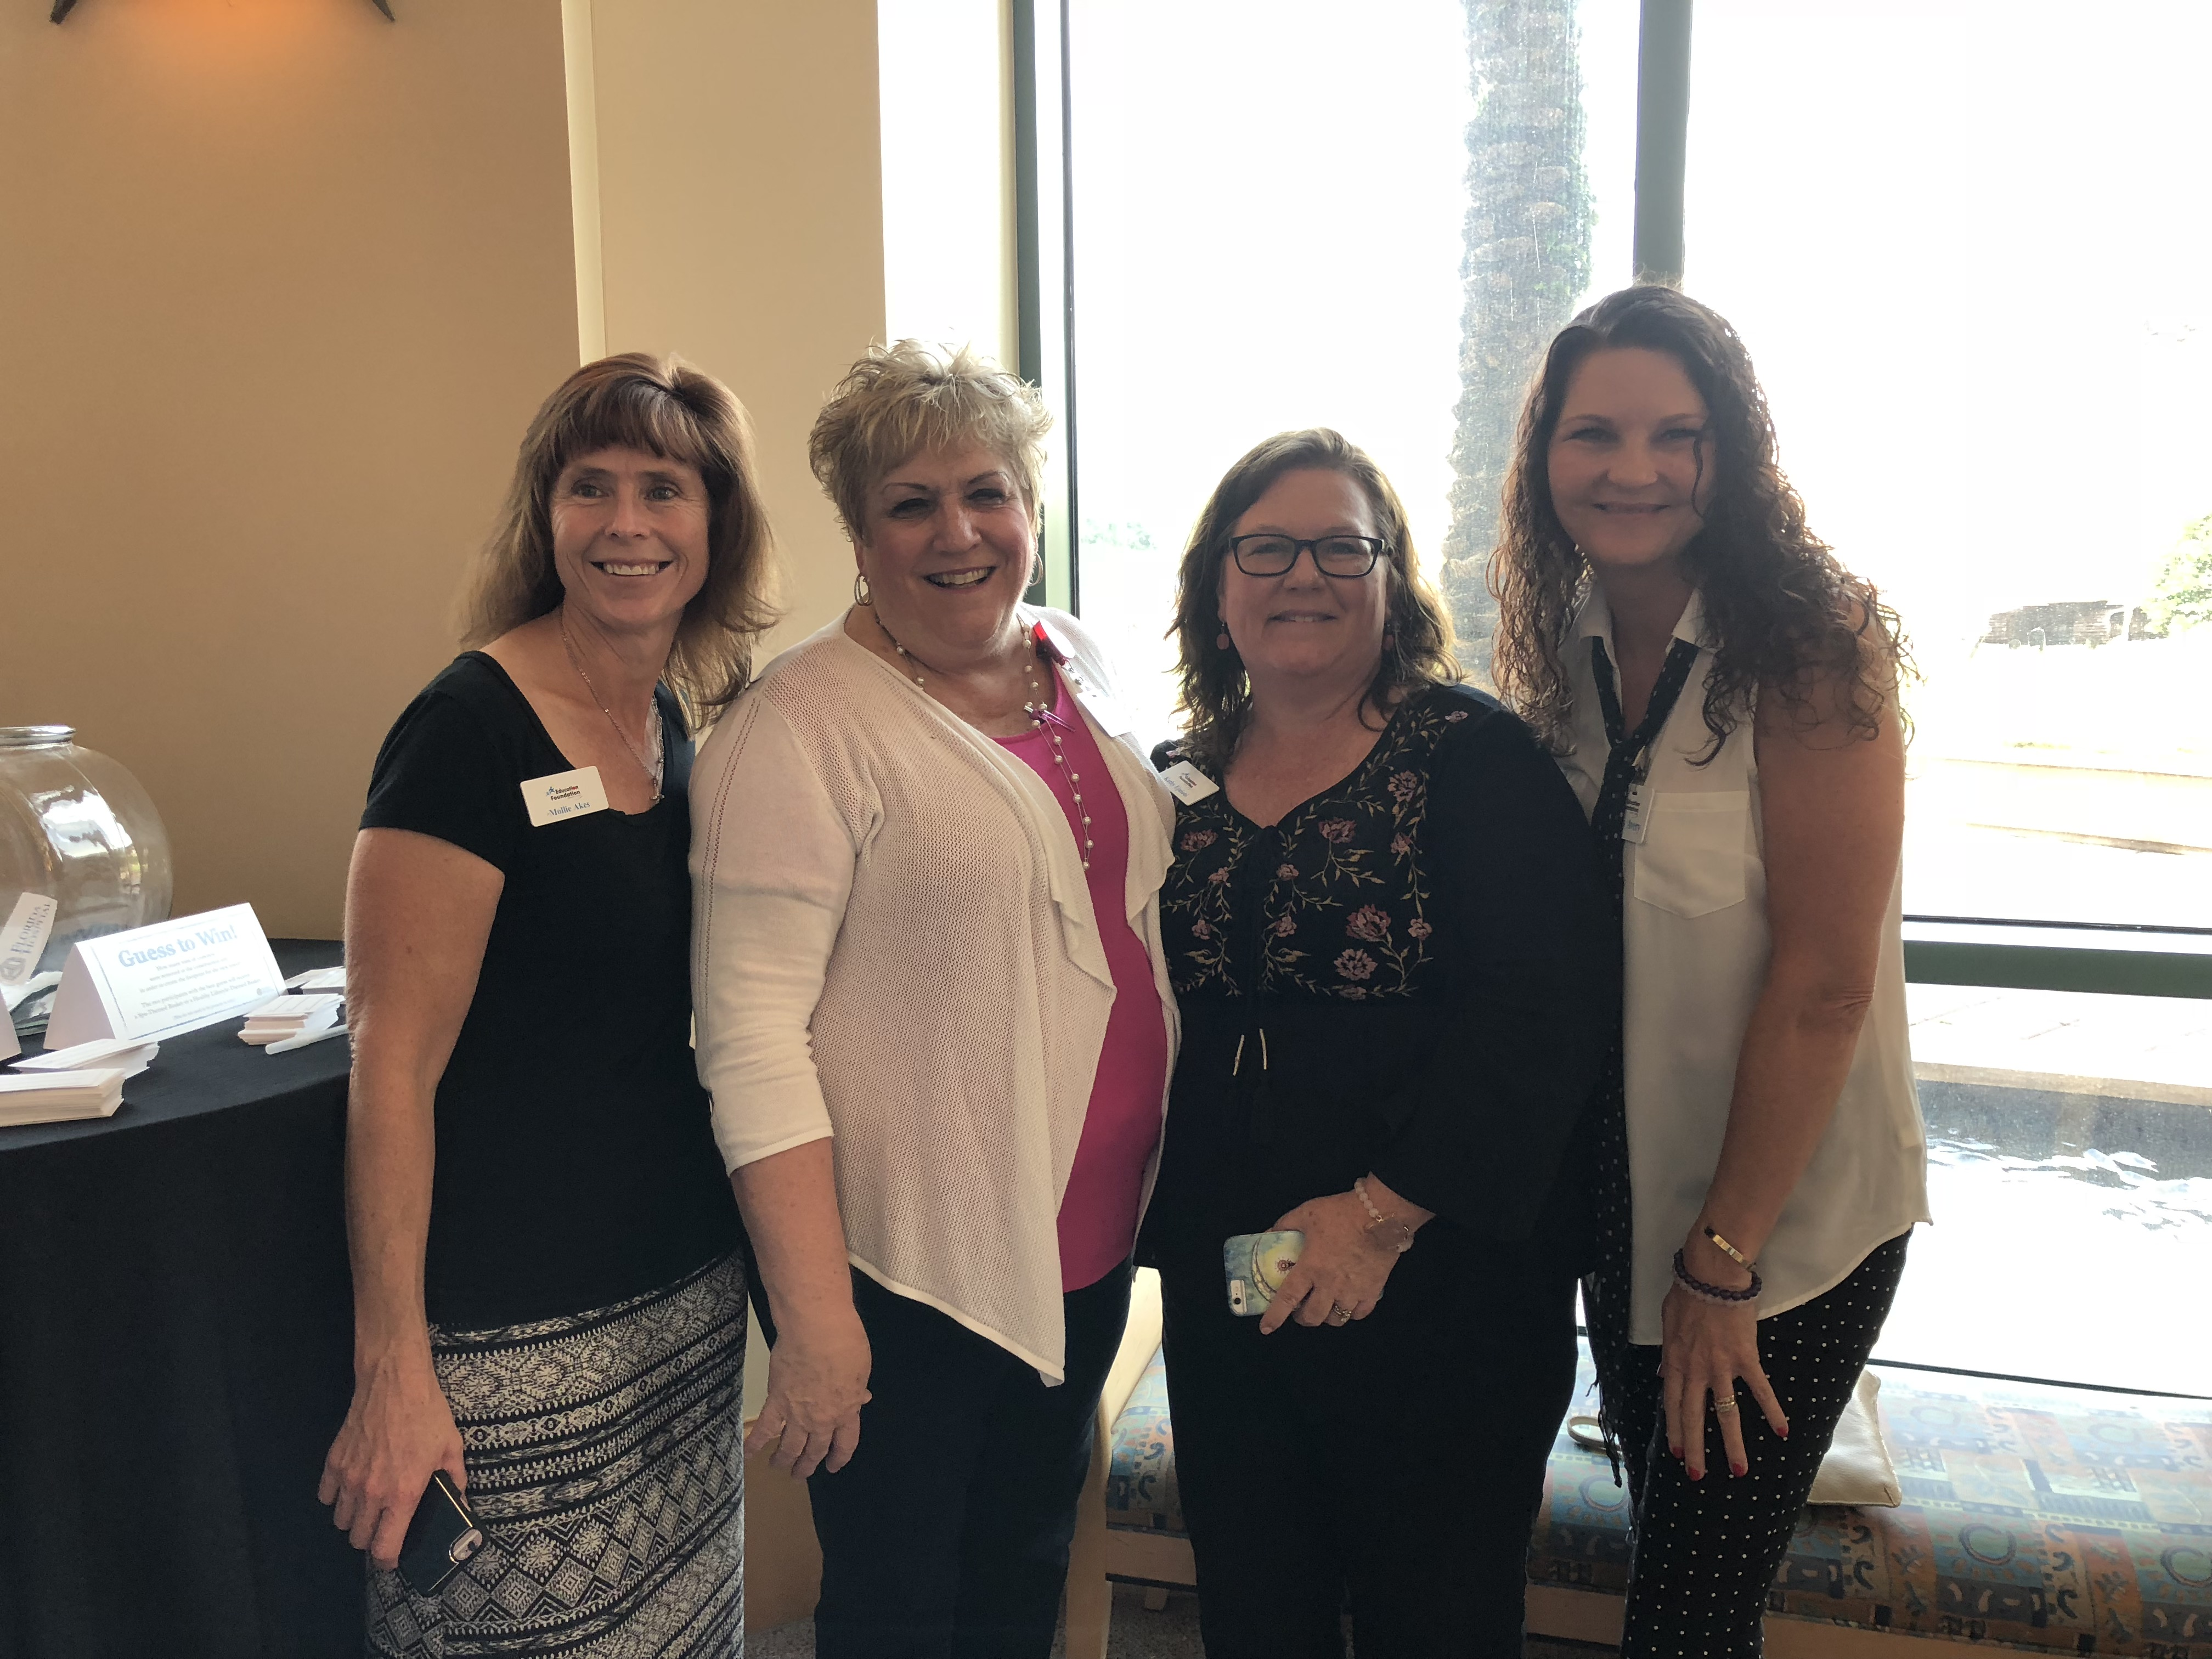 Picture of staff members at an event.